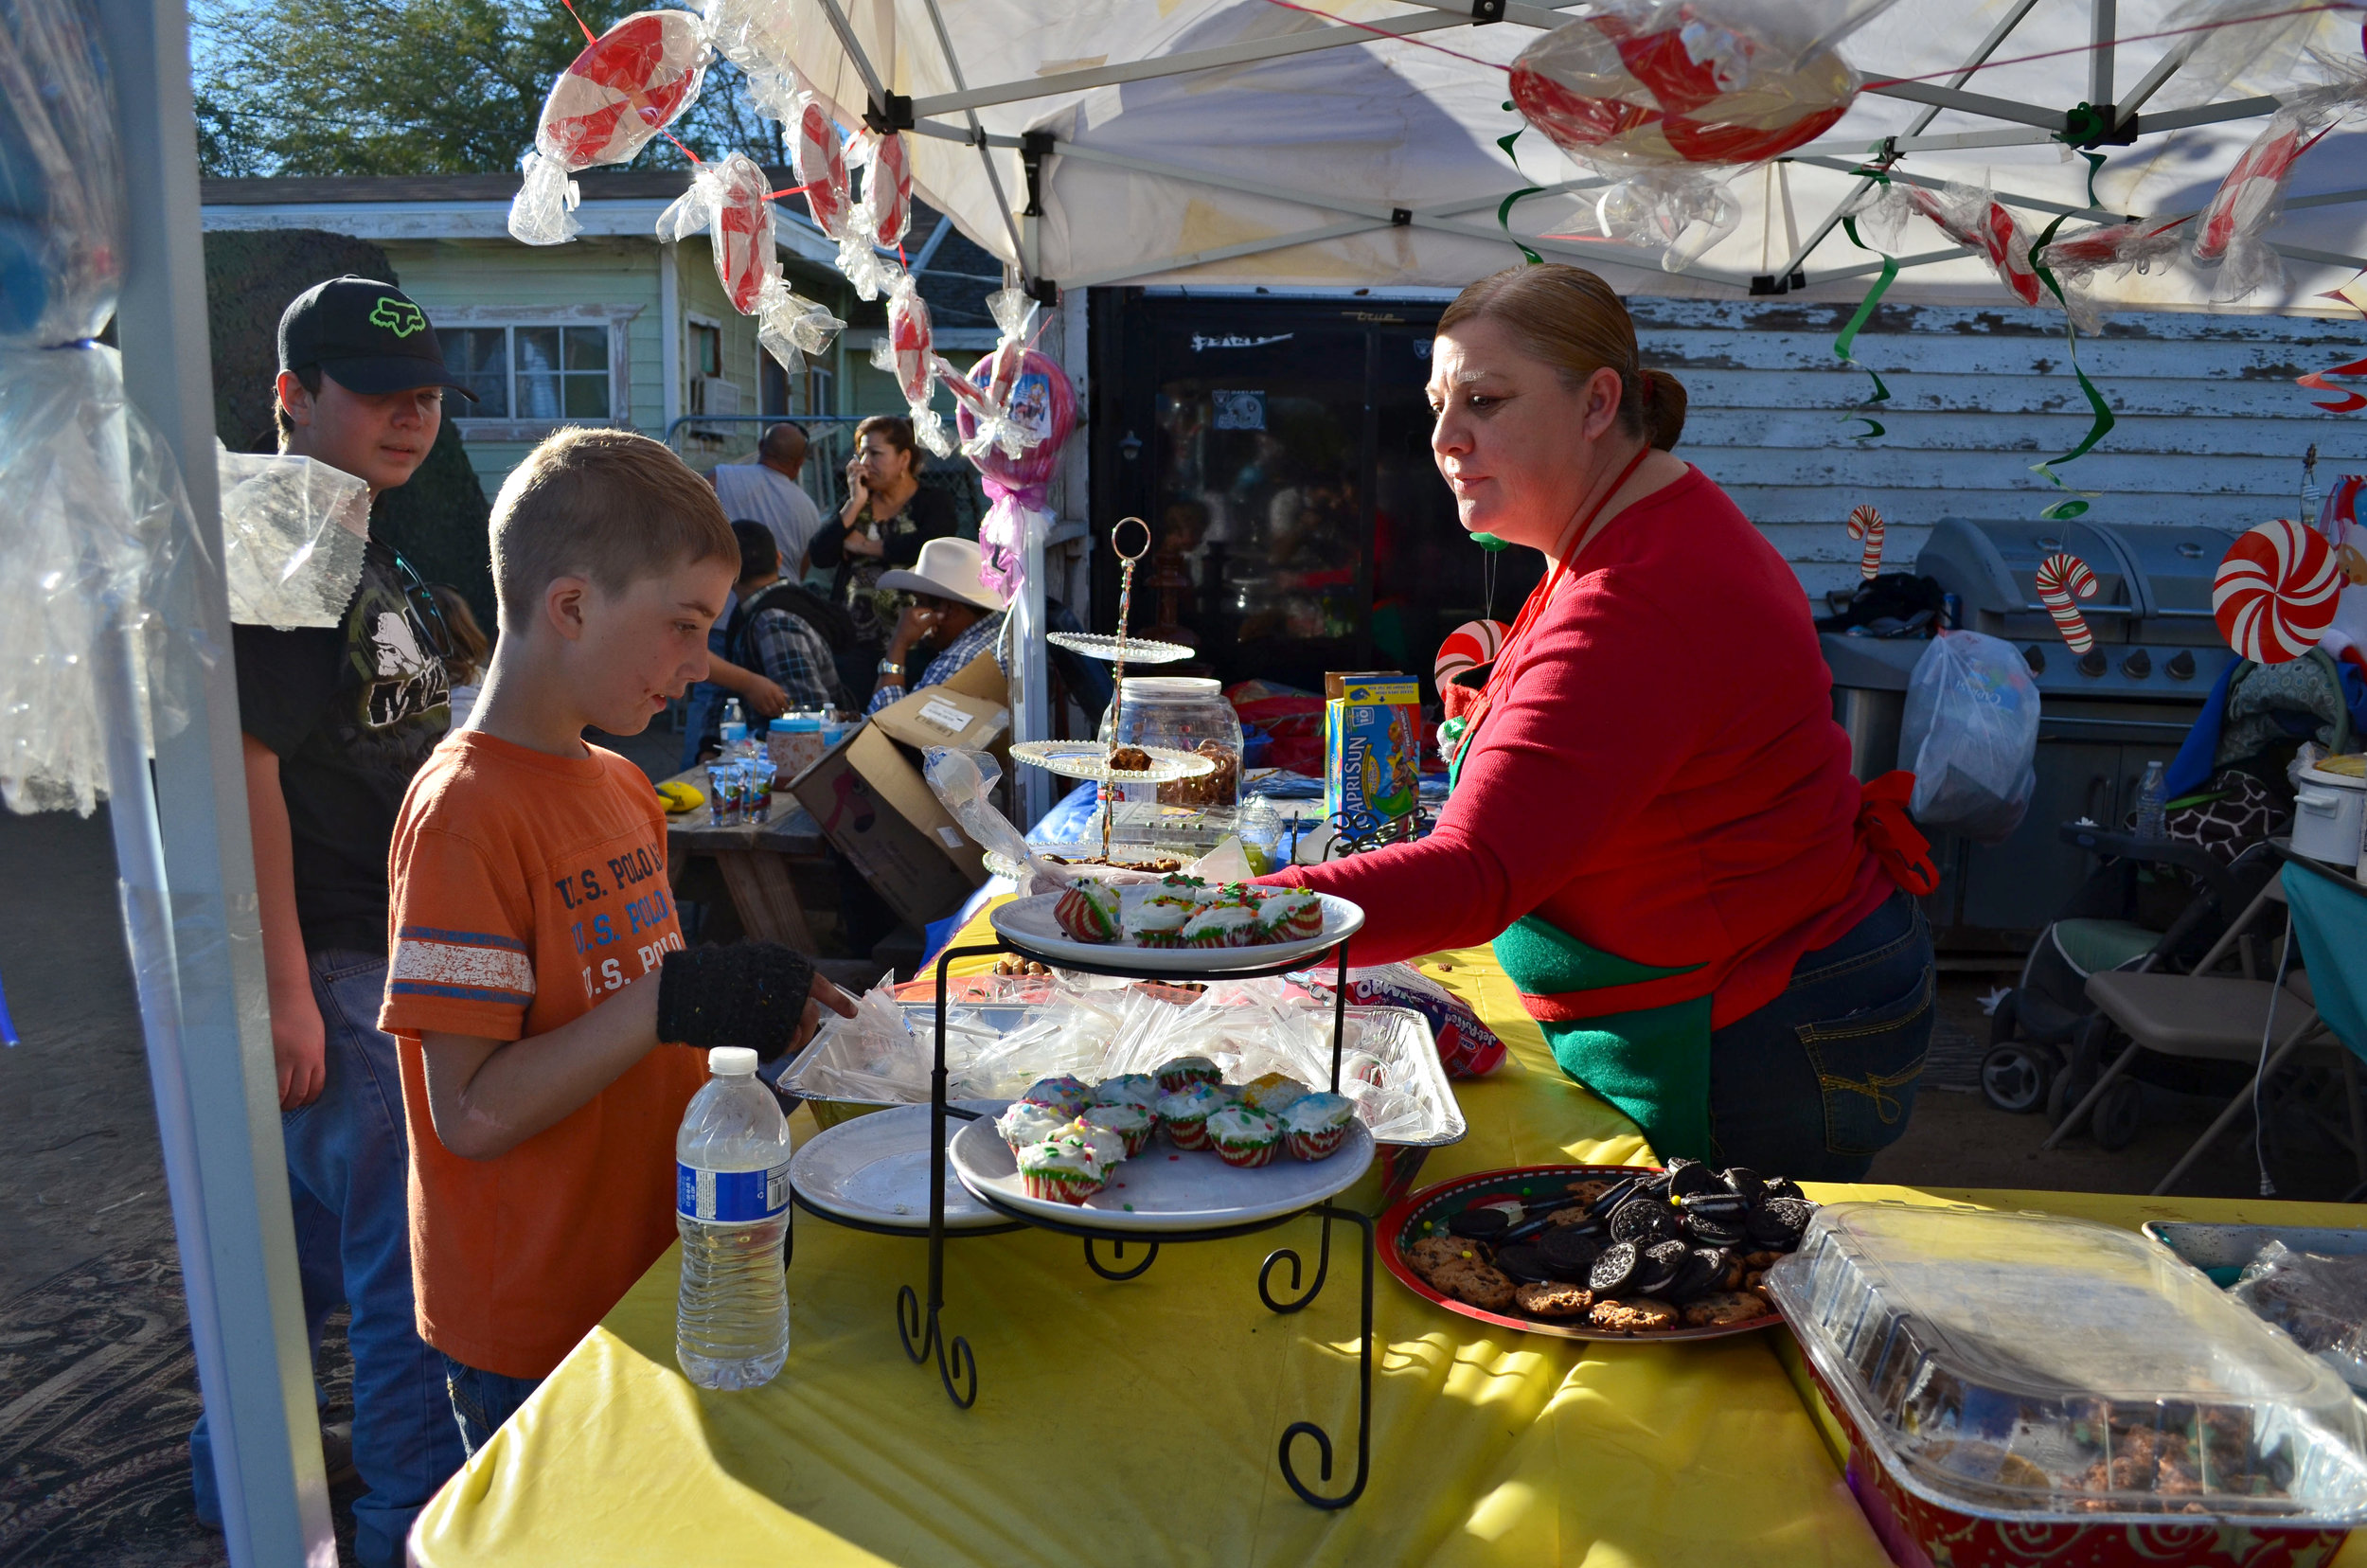 """Hope Verdugo gives Lucas Thayers, 8, a cake pop. Verdugo and her friends turned a corner of the Cardenas family's yard into """"Grandma's Gooey Sweet Shop for the Forgotten Angels Christmas party. (Imperial Valley Press/Antoine Abou-Diwan)"""